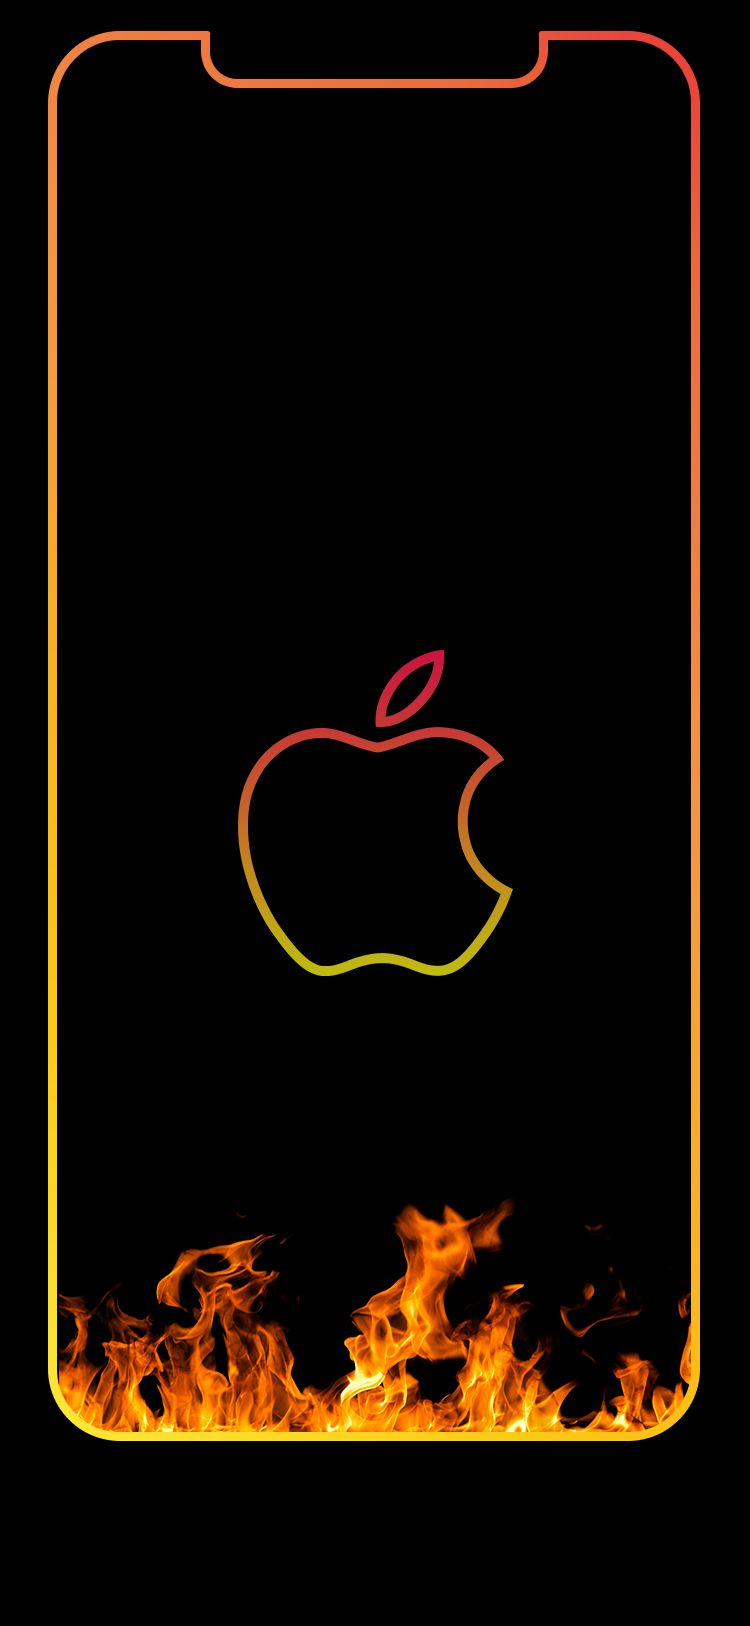 Iphone Xs Max Wallpaper Fire Outline Lockscreen Apple Wallpaper Apple Wallpaper Iphone Iphone Wallpaper